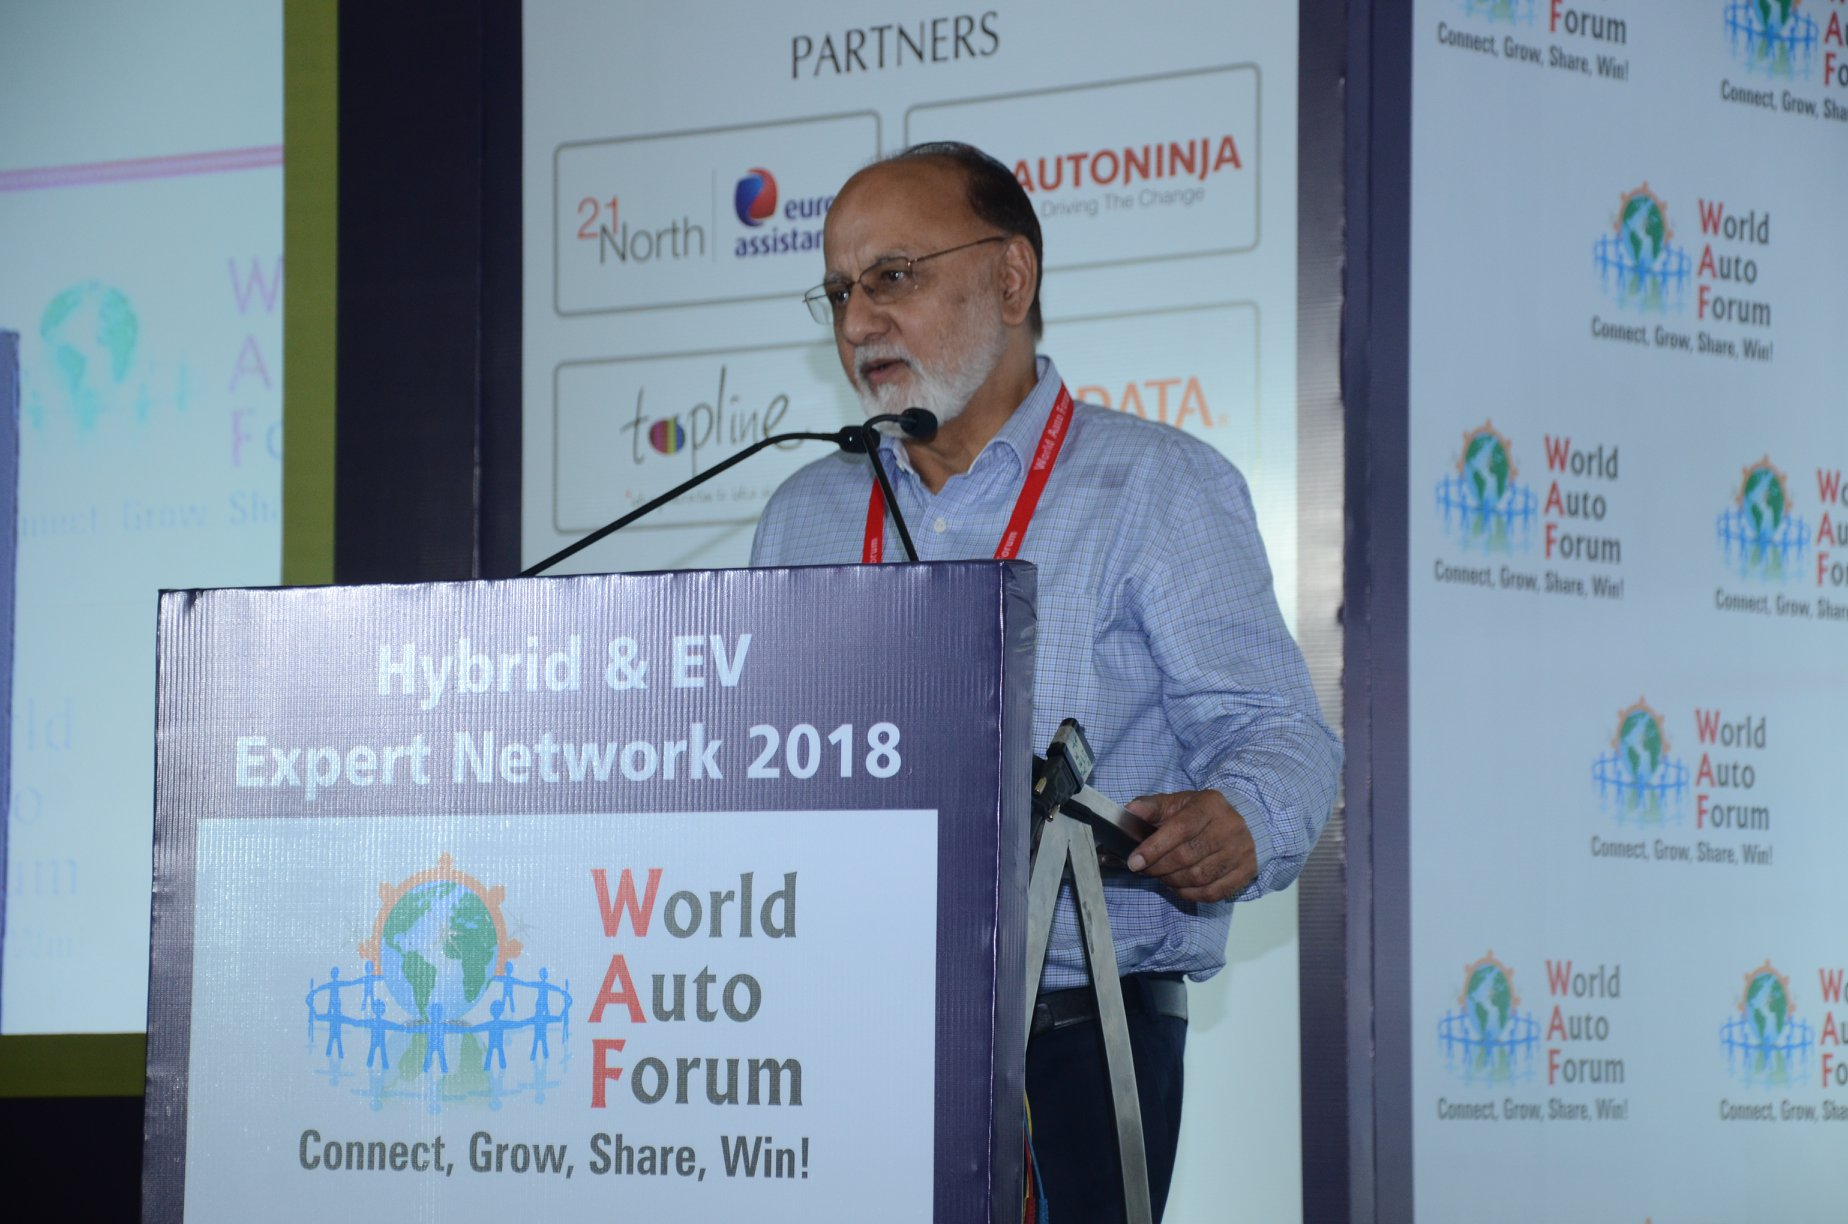 Hybrid & Electric Vehicle Expert Network - HEVEN 2018